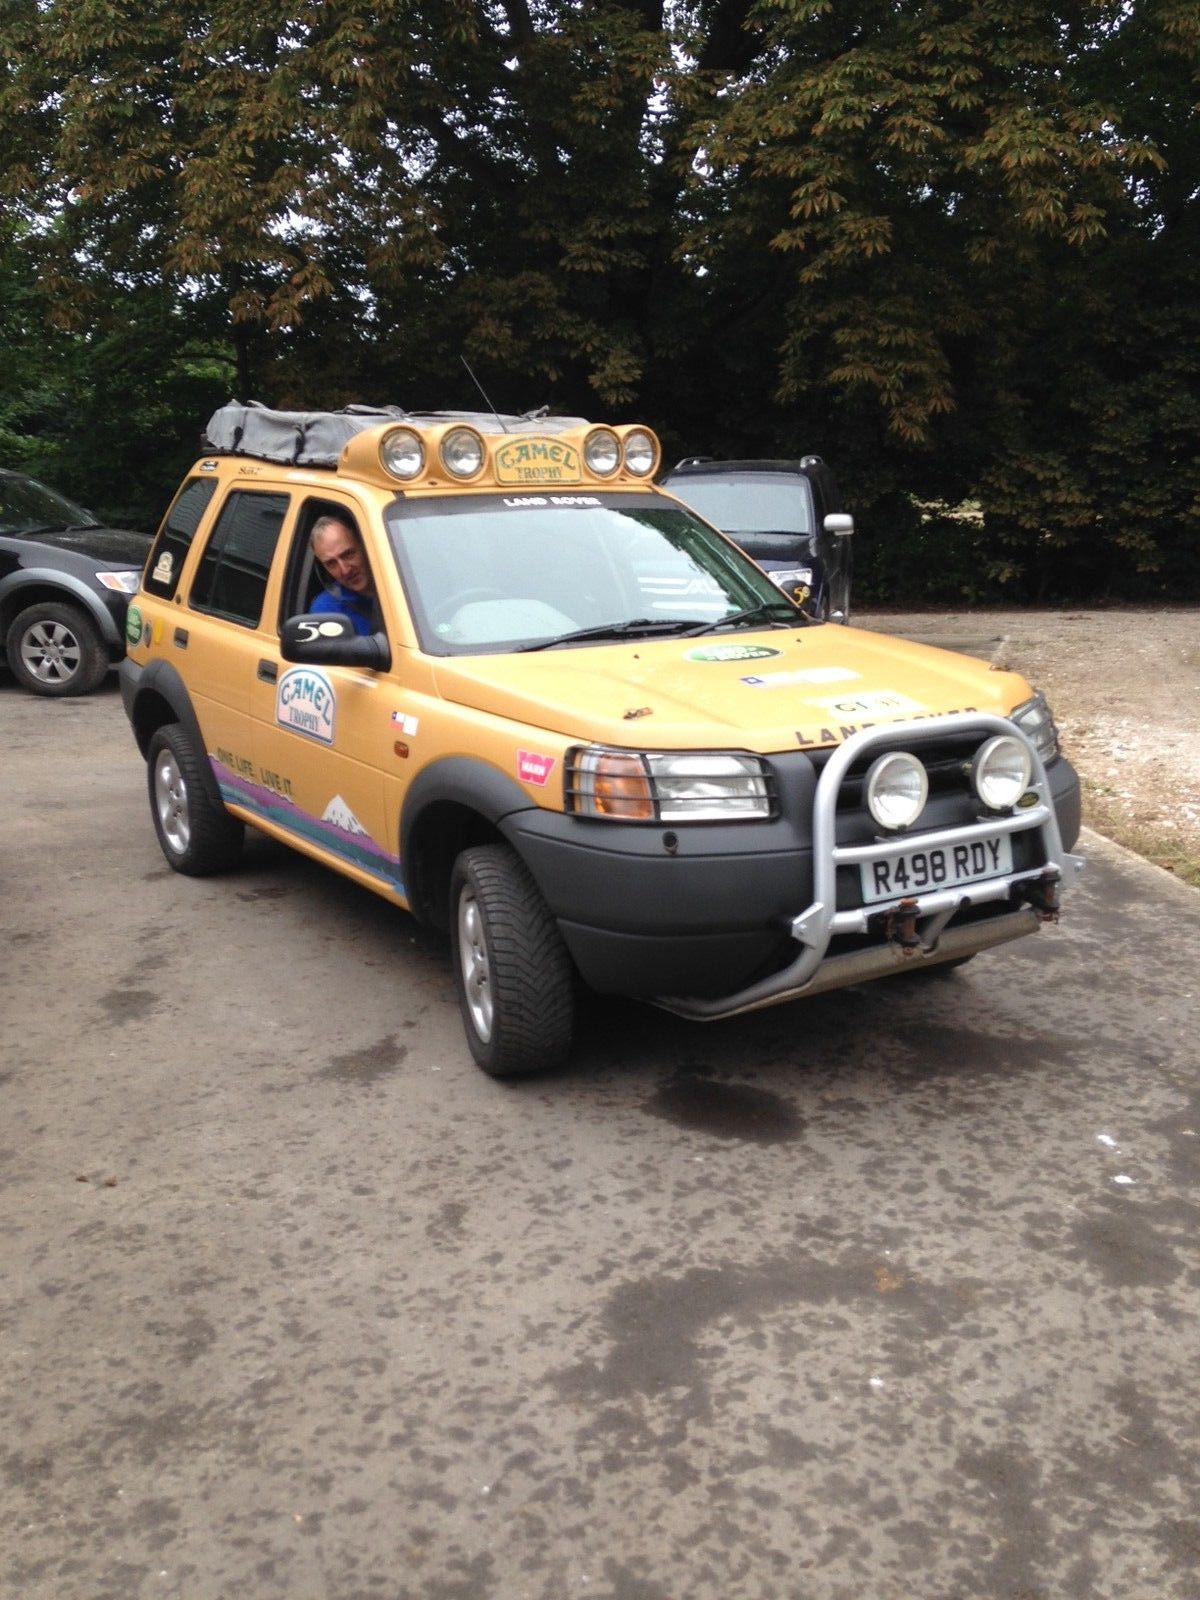 landrover land information specs freelander rover parts pictures